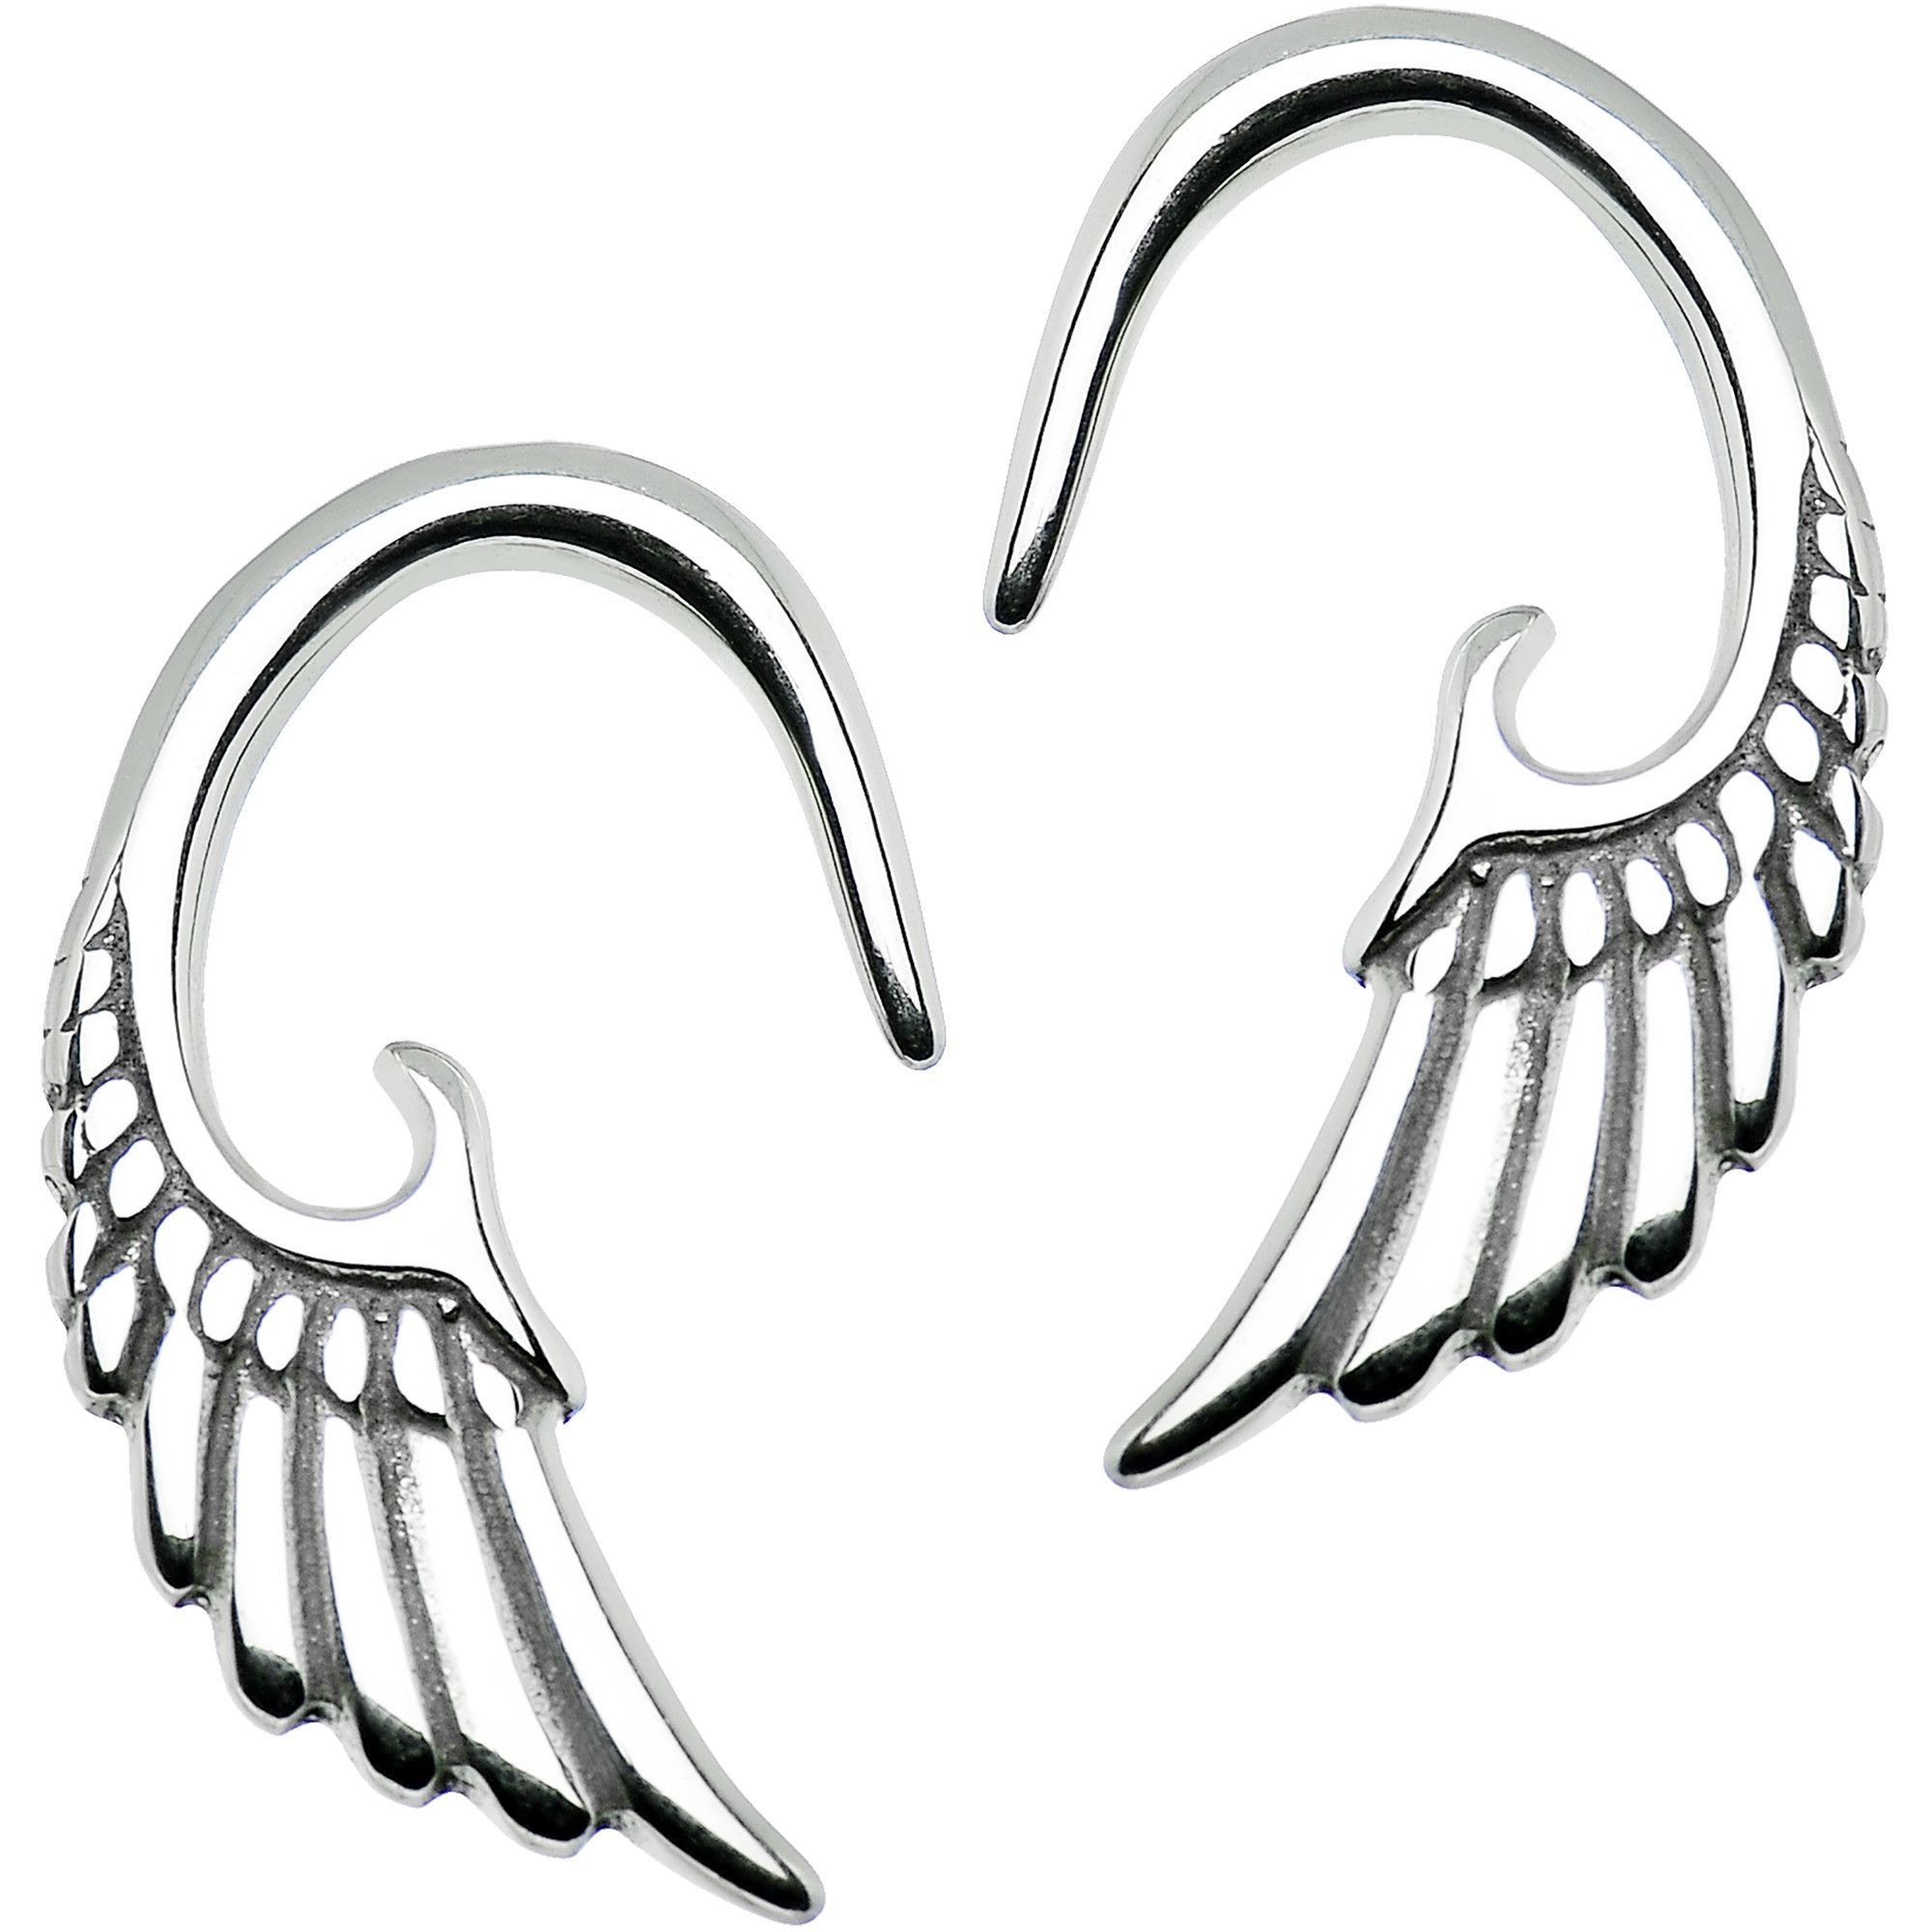 10 Gauge Stainless Steel Angel Wing Curved Taper Set Ear Gauges Ear Tapers Wings Design